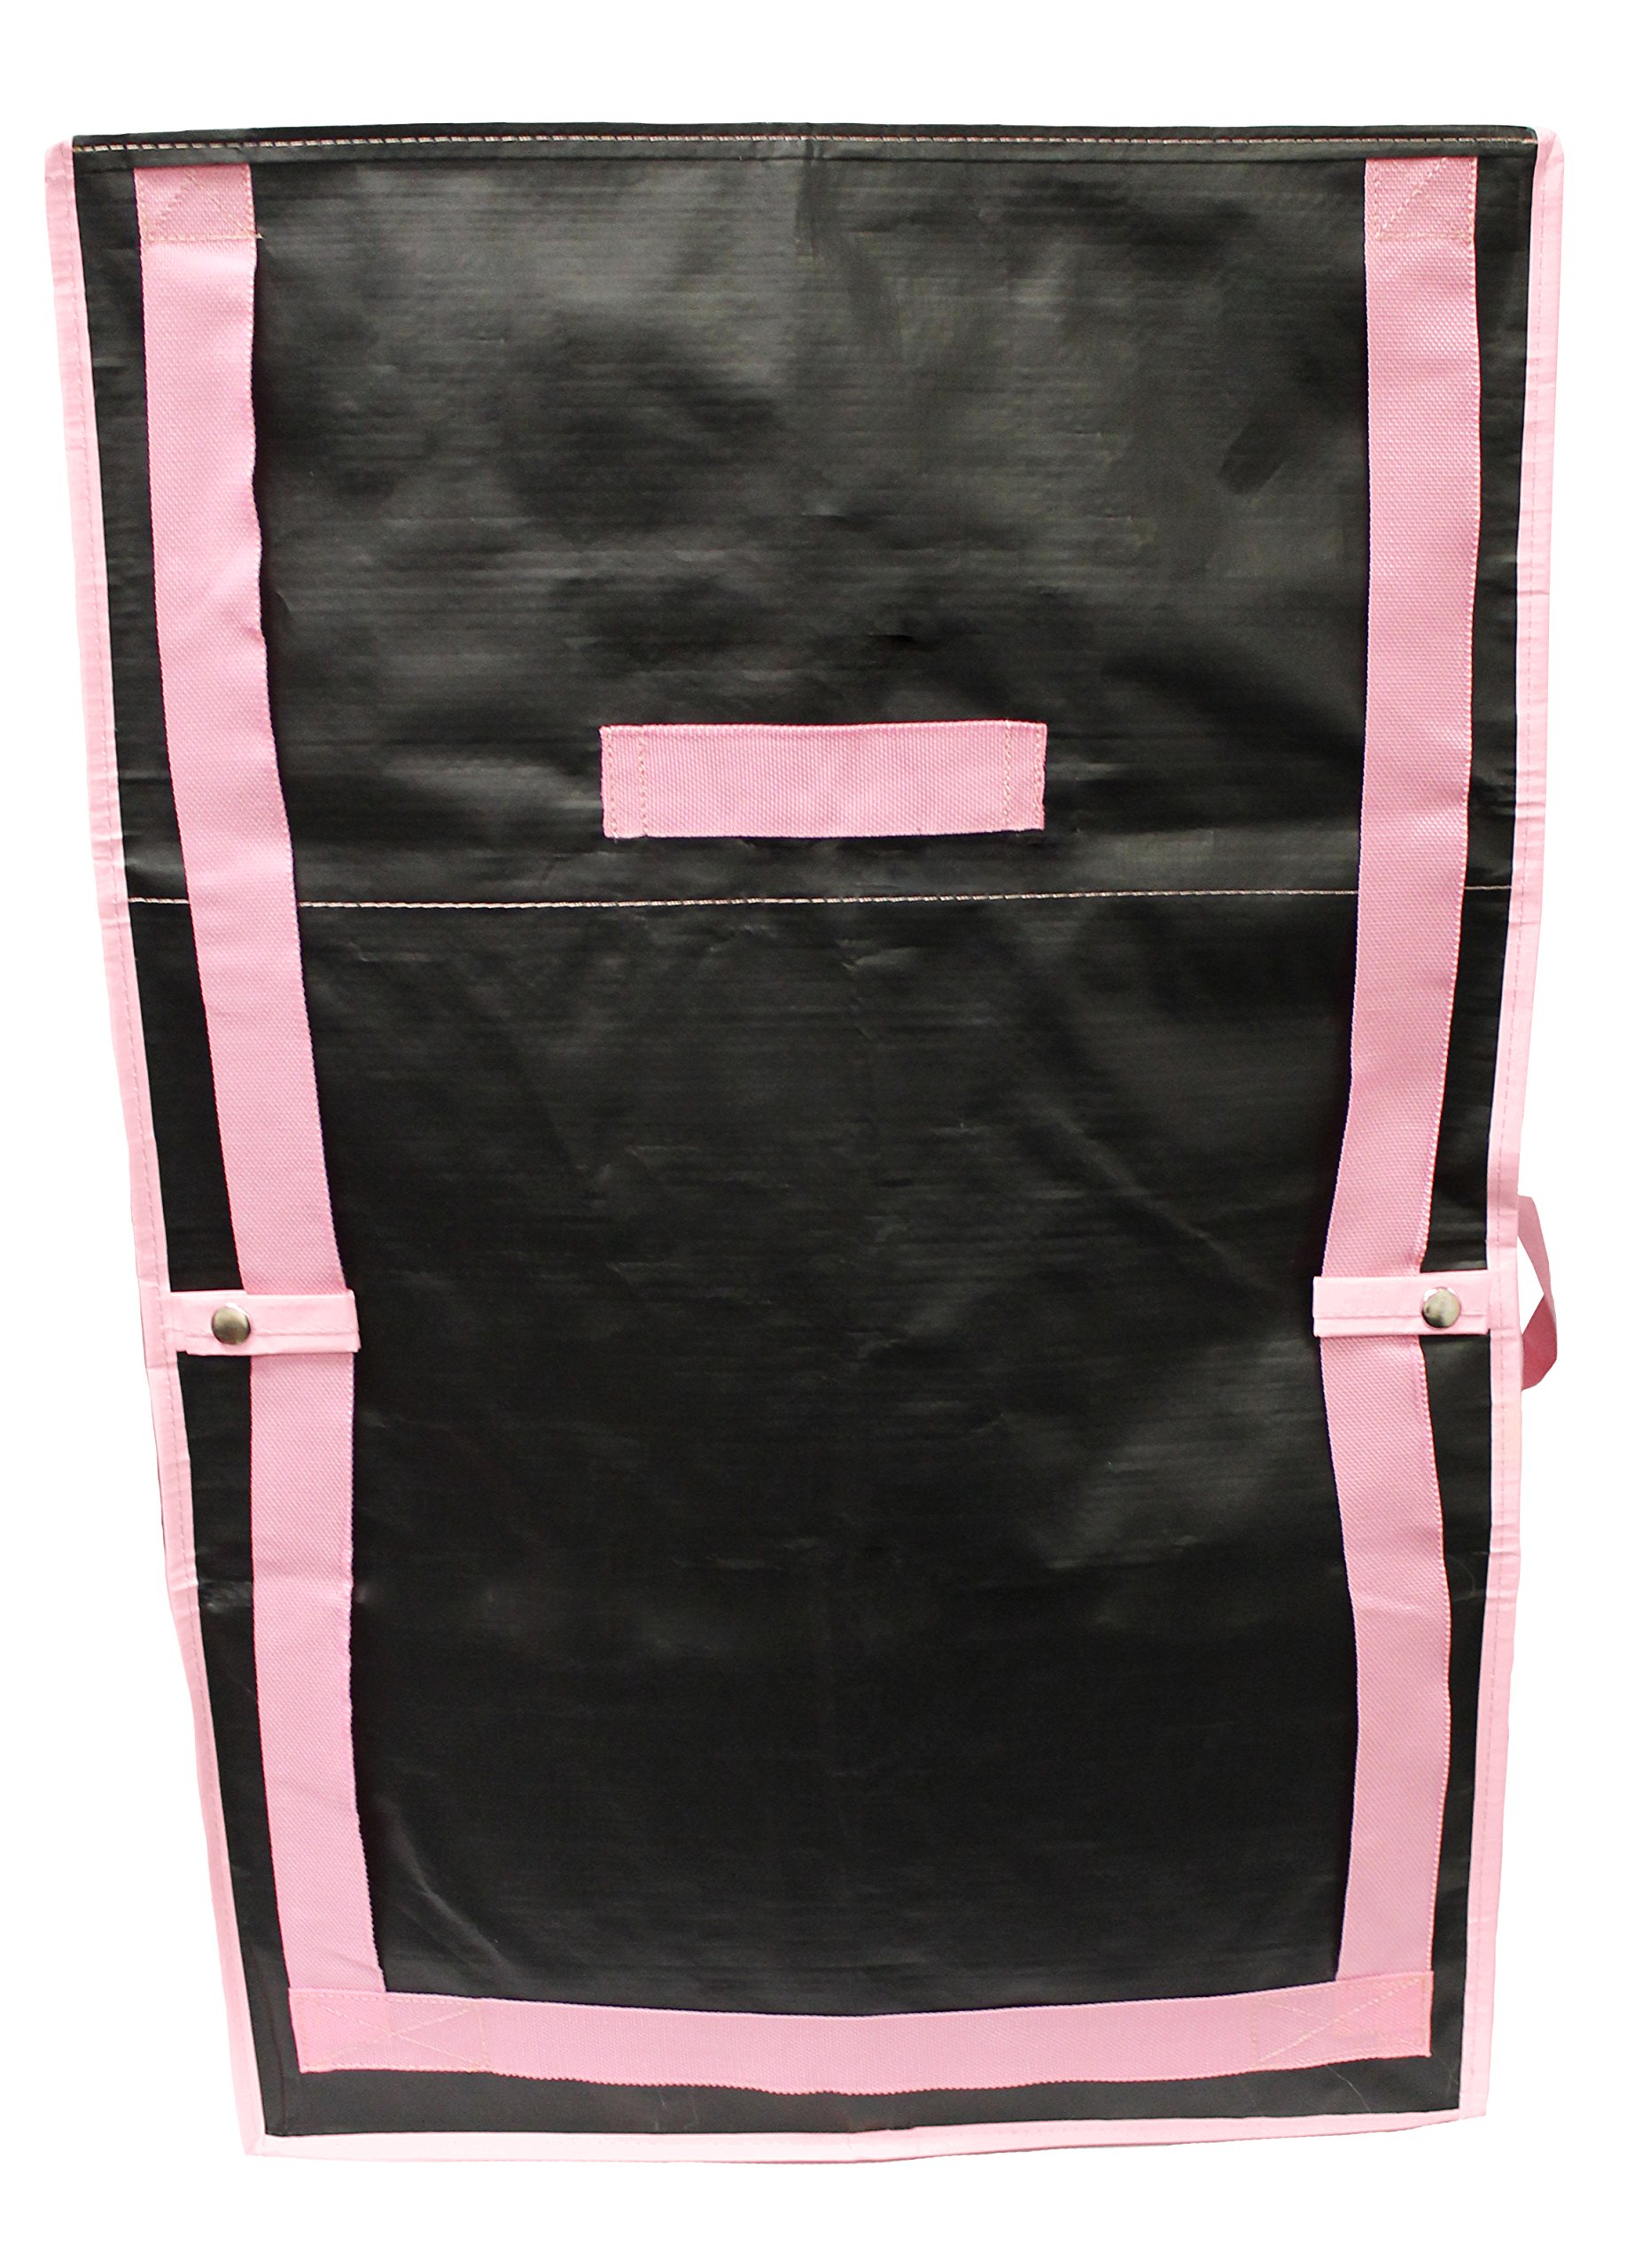 Earthwise Extra Large Reusable Storage Bags Totes Container Backpack Handles w/Zipper closure in Matte Black with Pink Trim Great for MOVING, Compatible with IKEA Frakta Carts (SET OF 4) by Earthwise (Image #7)